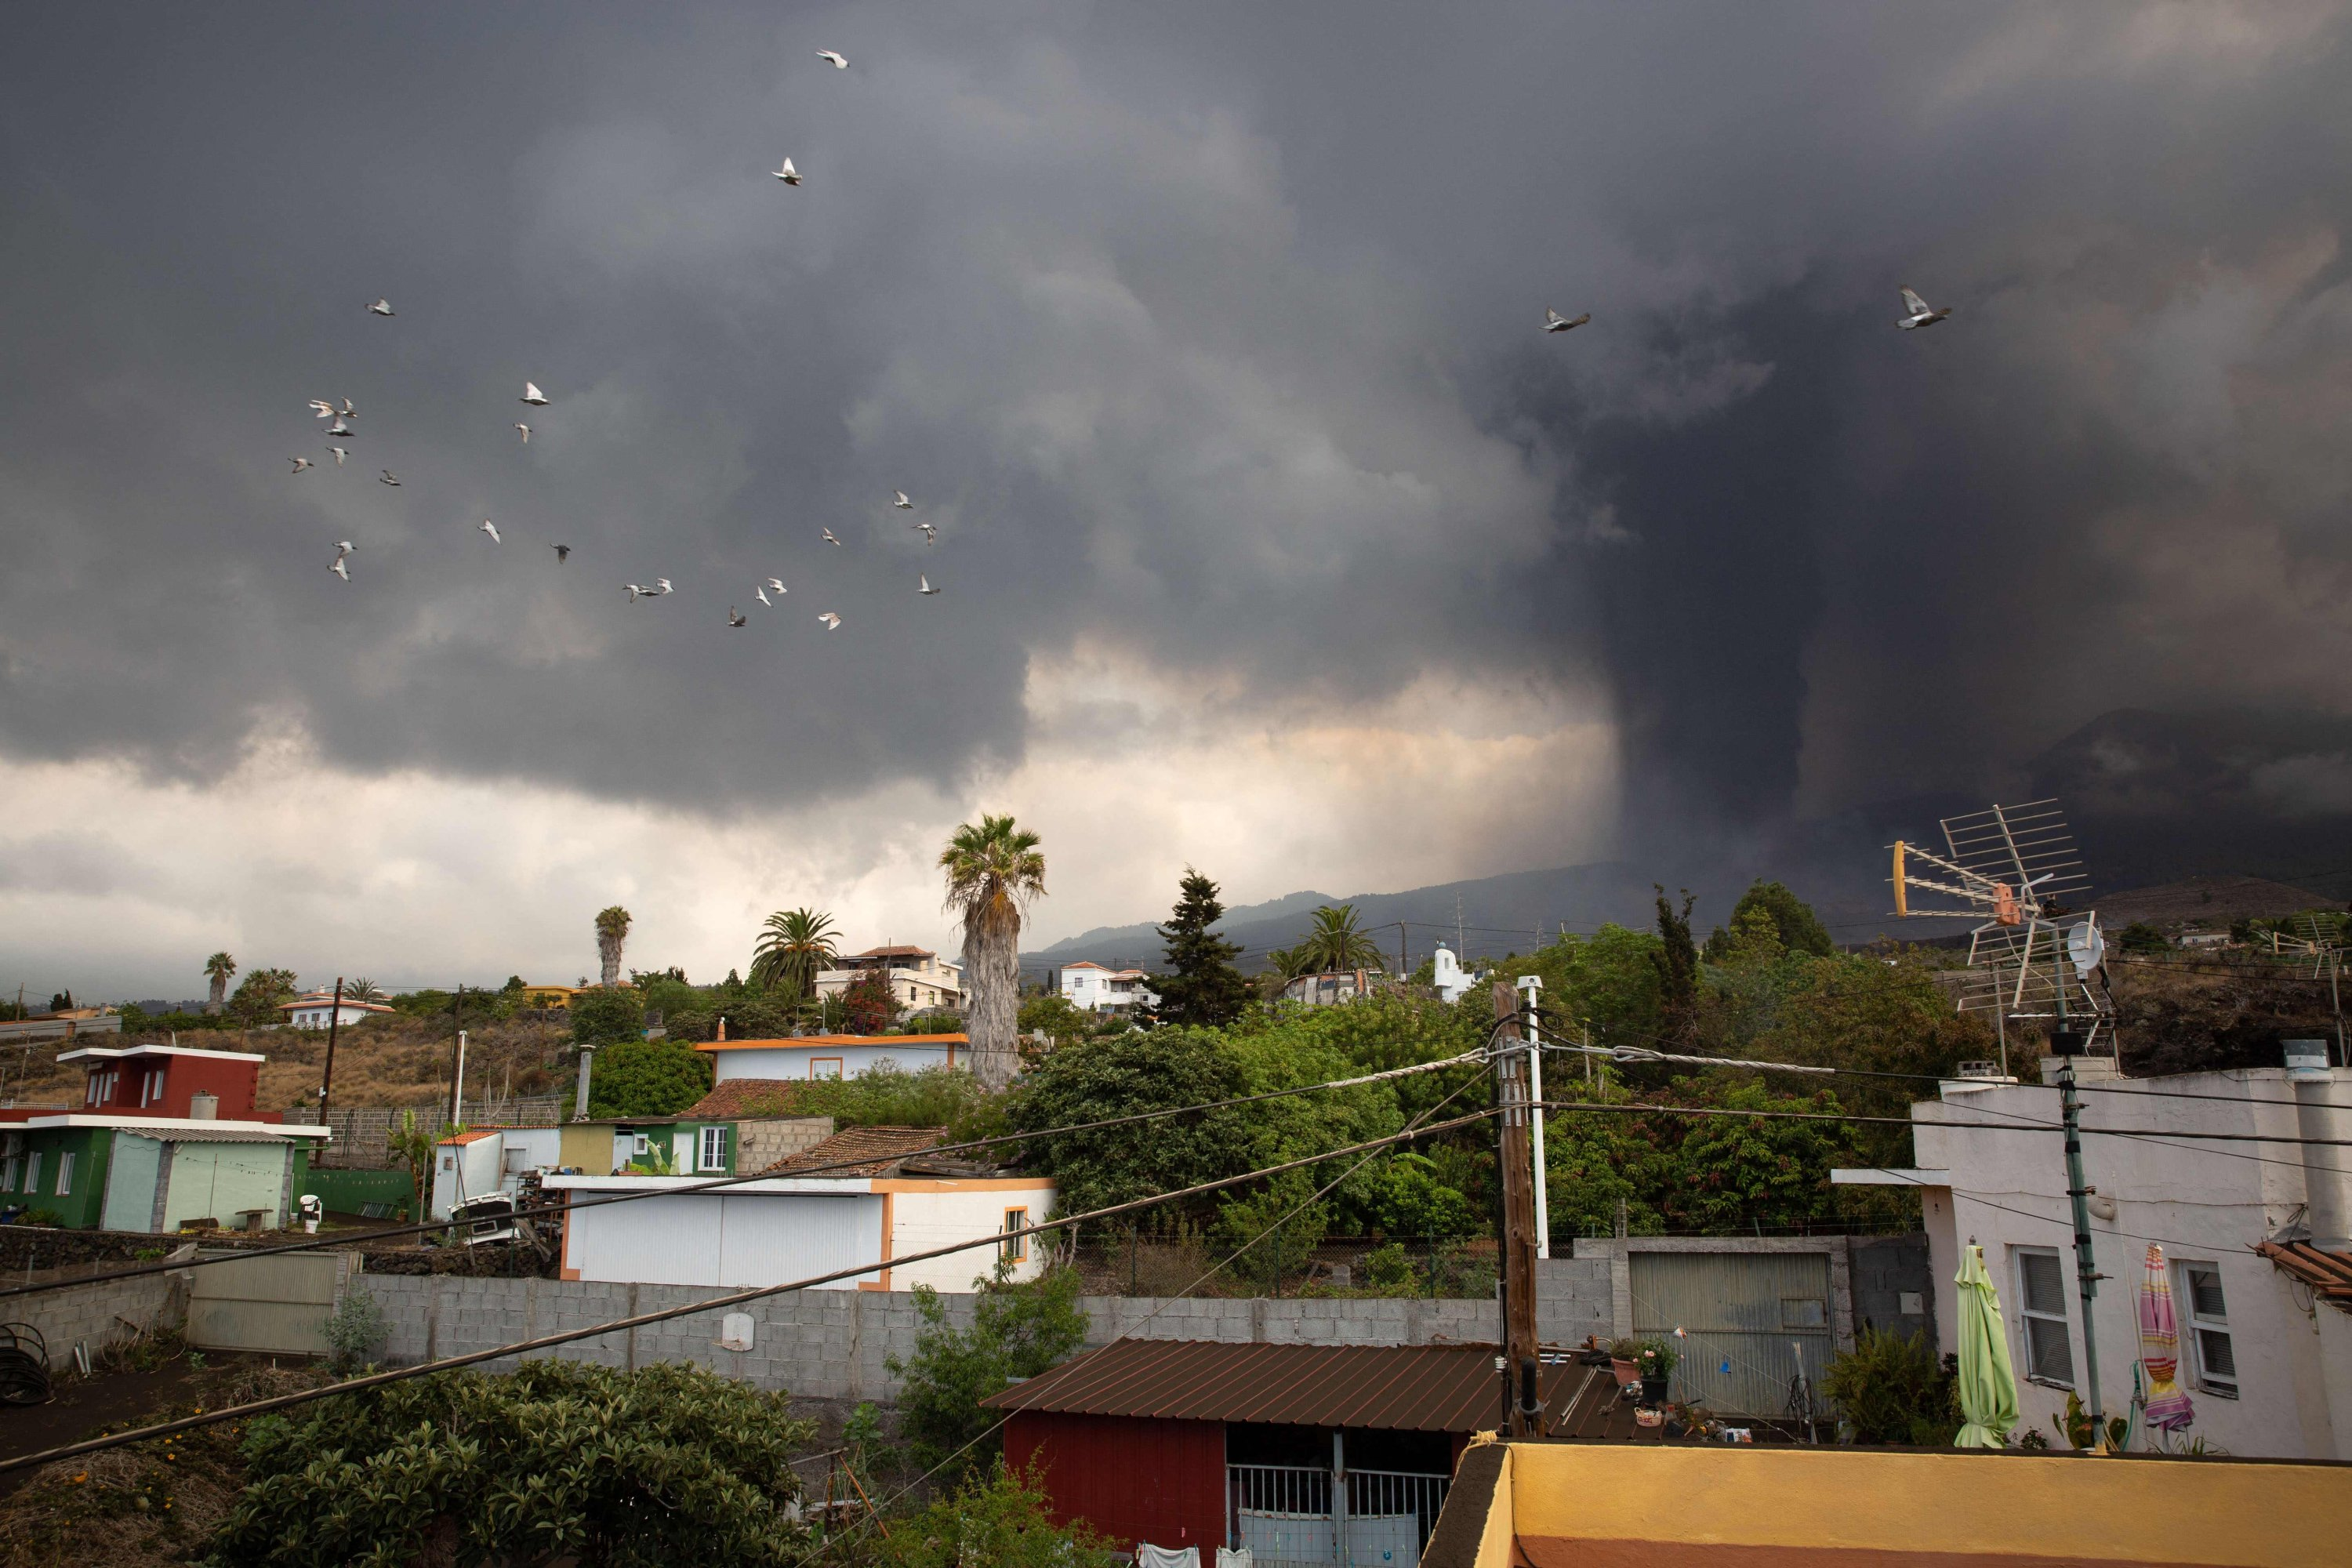 A column of smoke and pyroclastic materials spewed by the Cumbre Vieja volcano is seen from the neighborhood of Todoque in Los Llanos de Aridane on the Canary island of La Palma, Sept. 24, 2021. (AFP Photo)